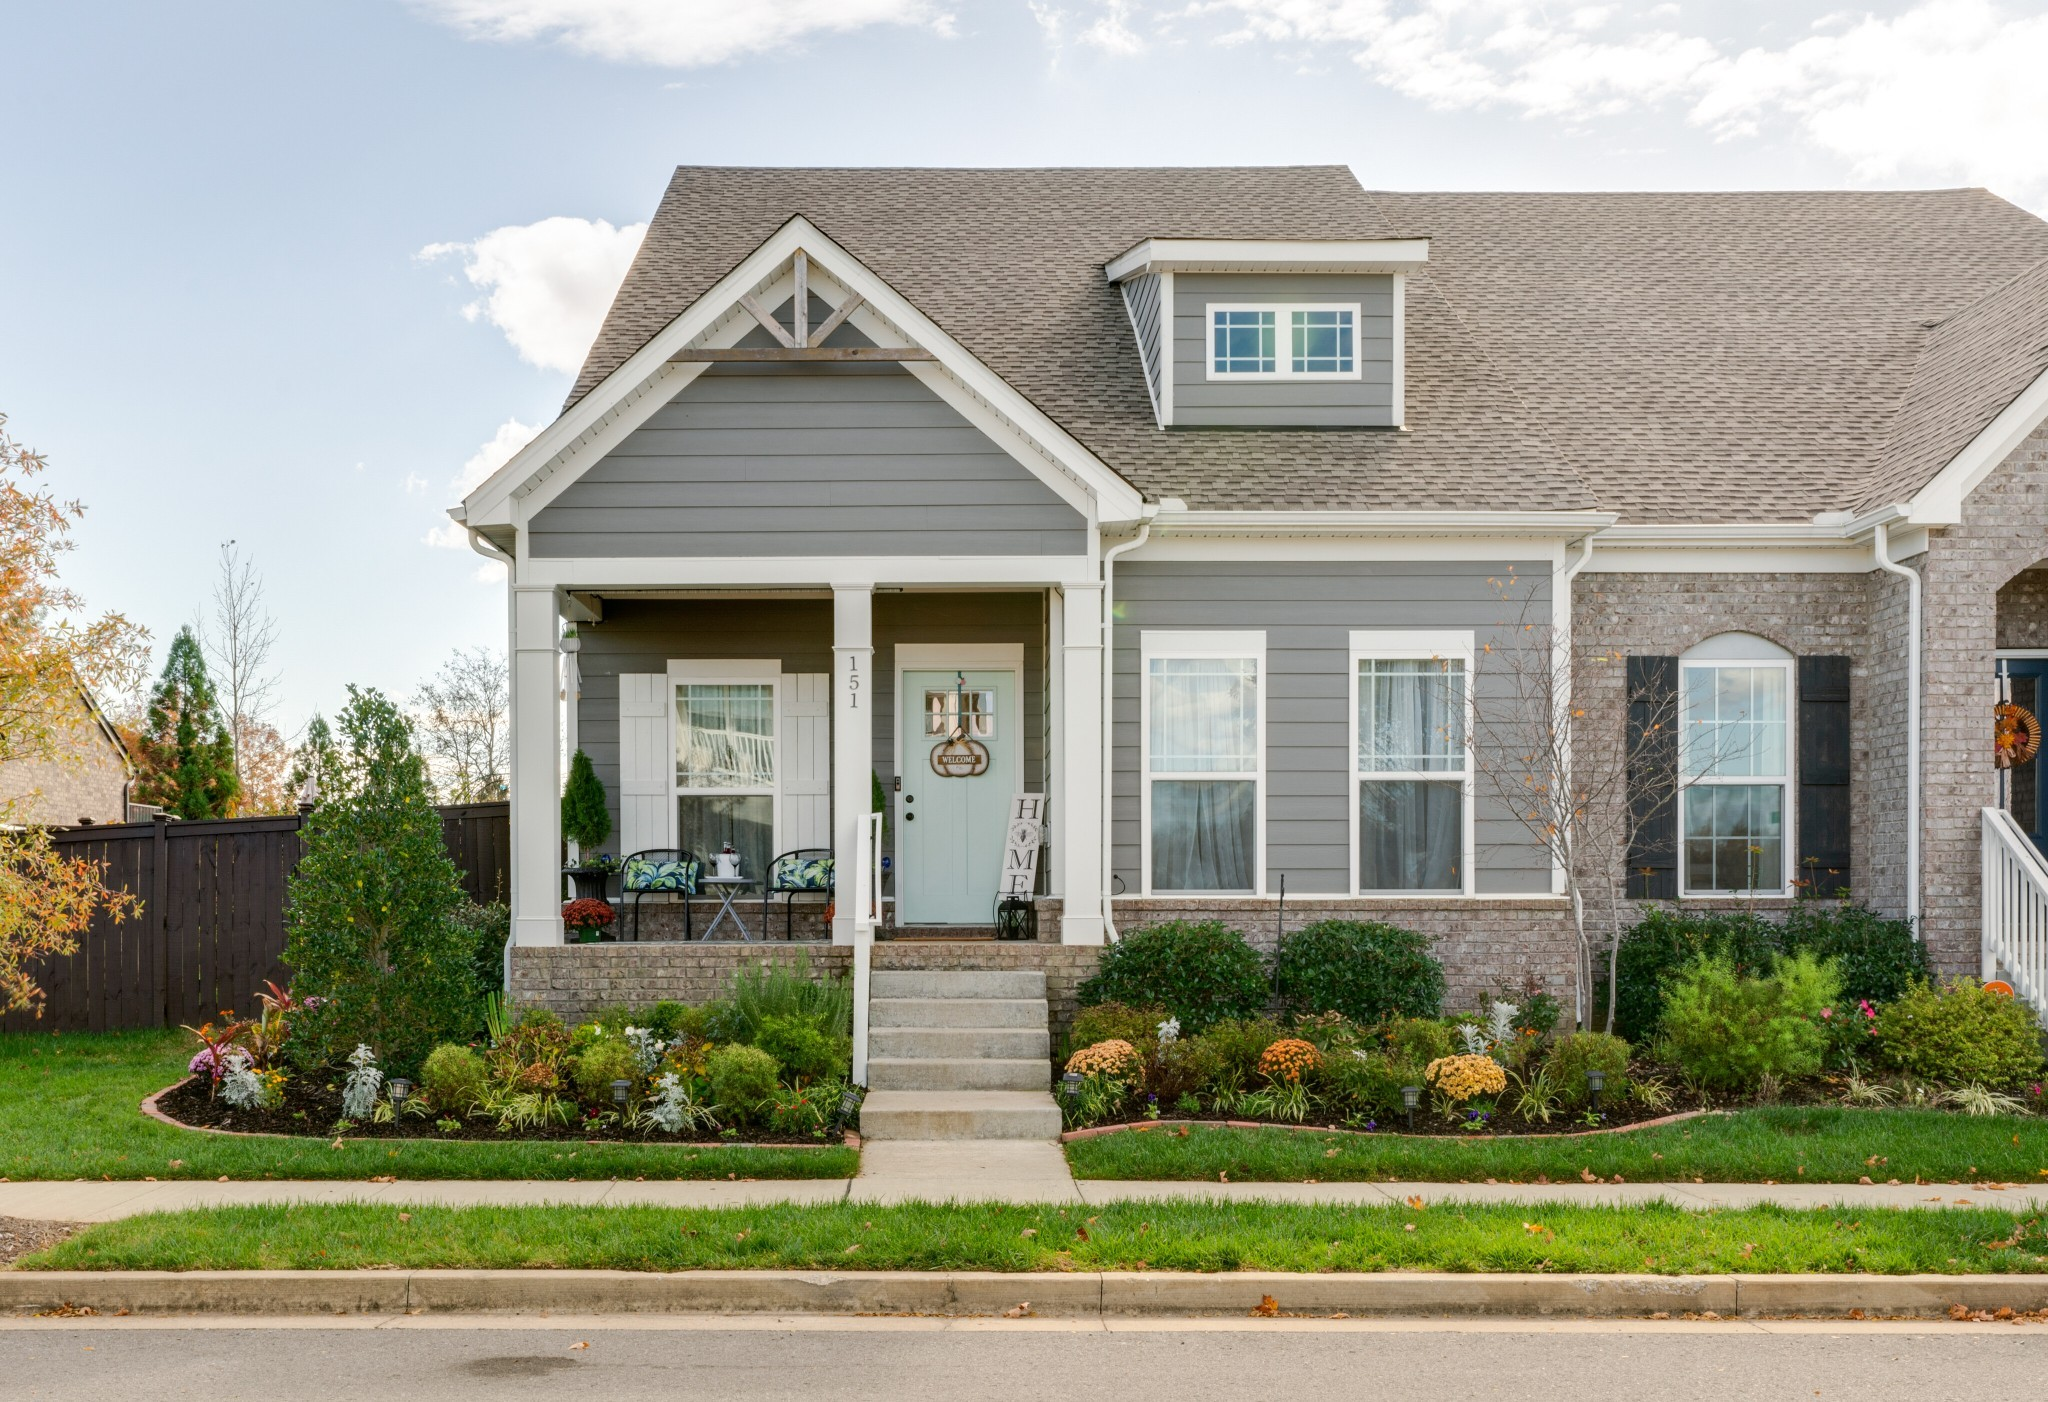 A MUST SEE!* Pristine, Normandy Craftsman Villa*Total 4 Bedrooms with 2 on the main level*3 full bat